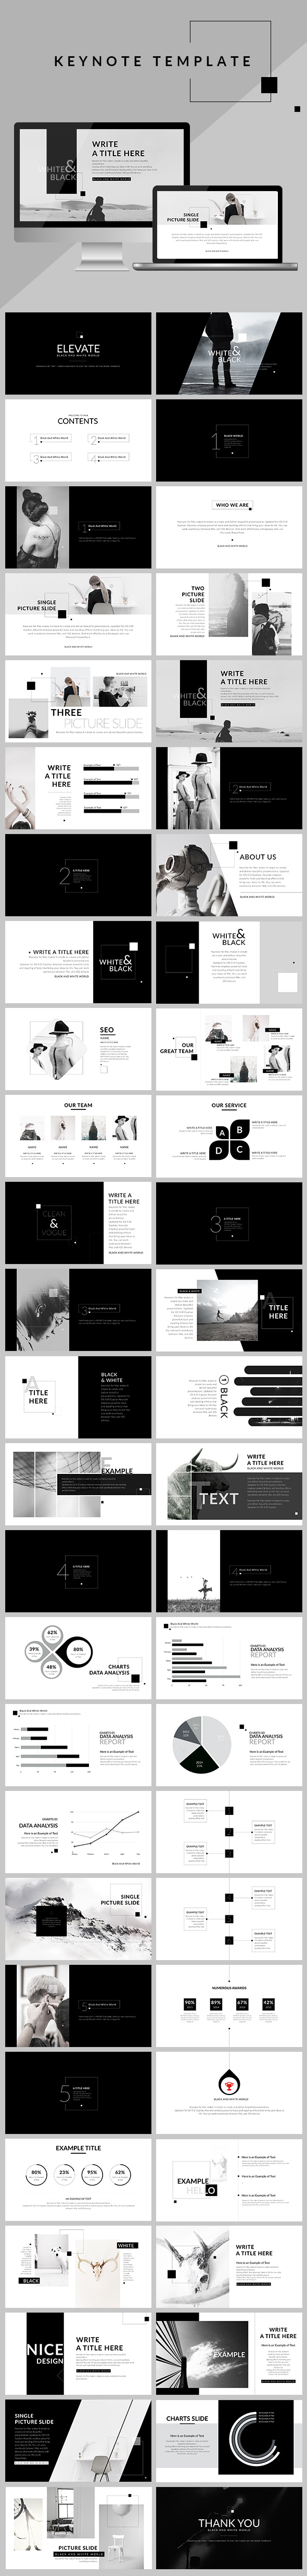 Graphicriver | Black & White - Clean Keynote Template Free Download free download Graphicriver | Black & White - Clean Keynote Template Free Download nulled Graphicriver | Black & White - Clean Keynote Template Free Download